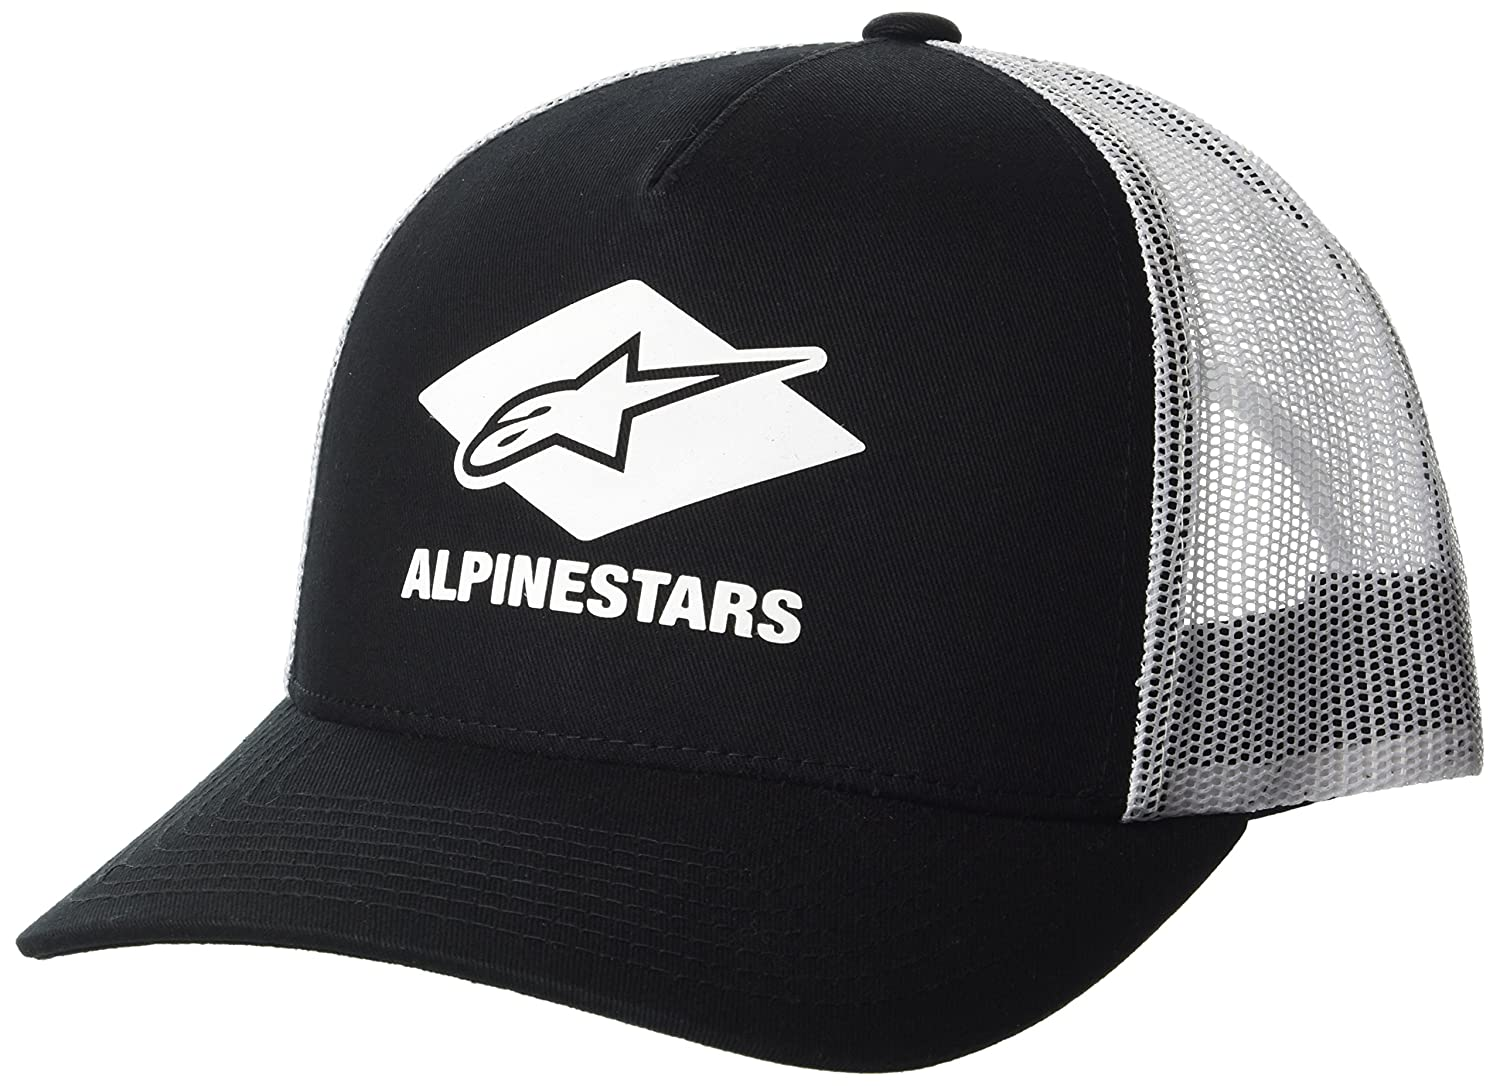 3bd8d1c9c31 ALPINESTARS diamond hat. Structured pinch front crown. Adjustable snap  back. Twill front fabric